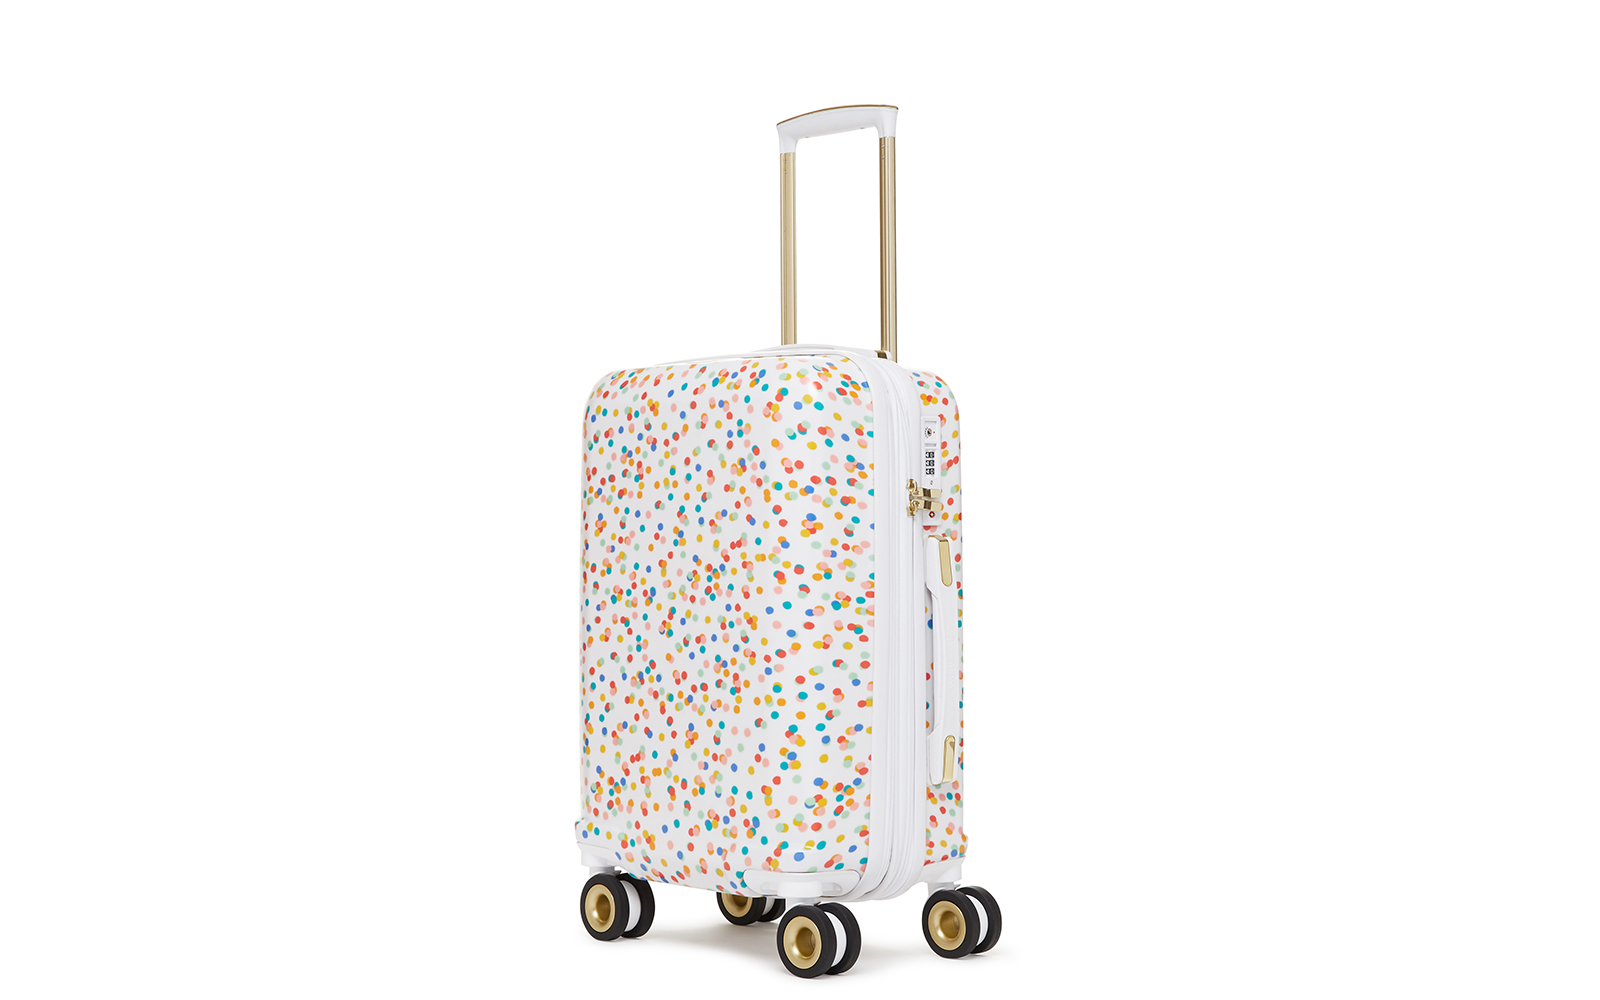 20-inch Hardshell Spinner Carry-on Suitcase in Confetti